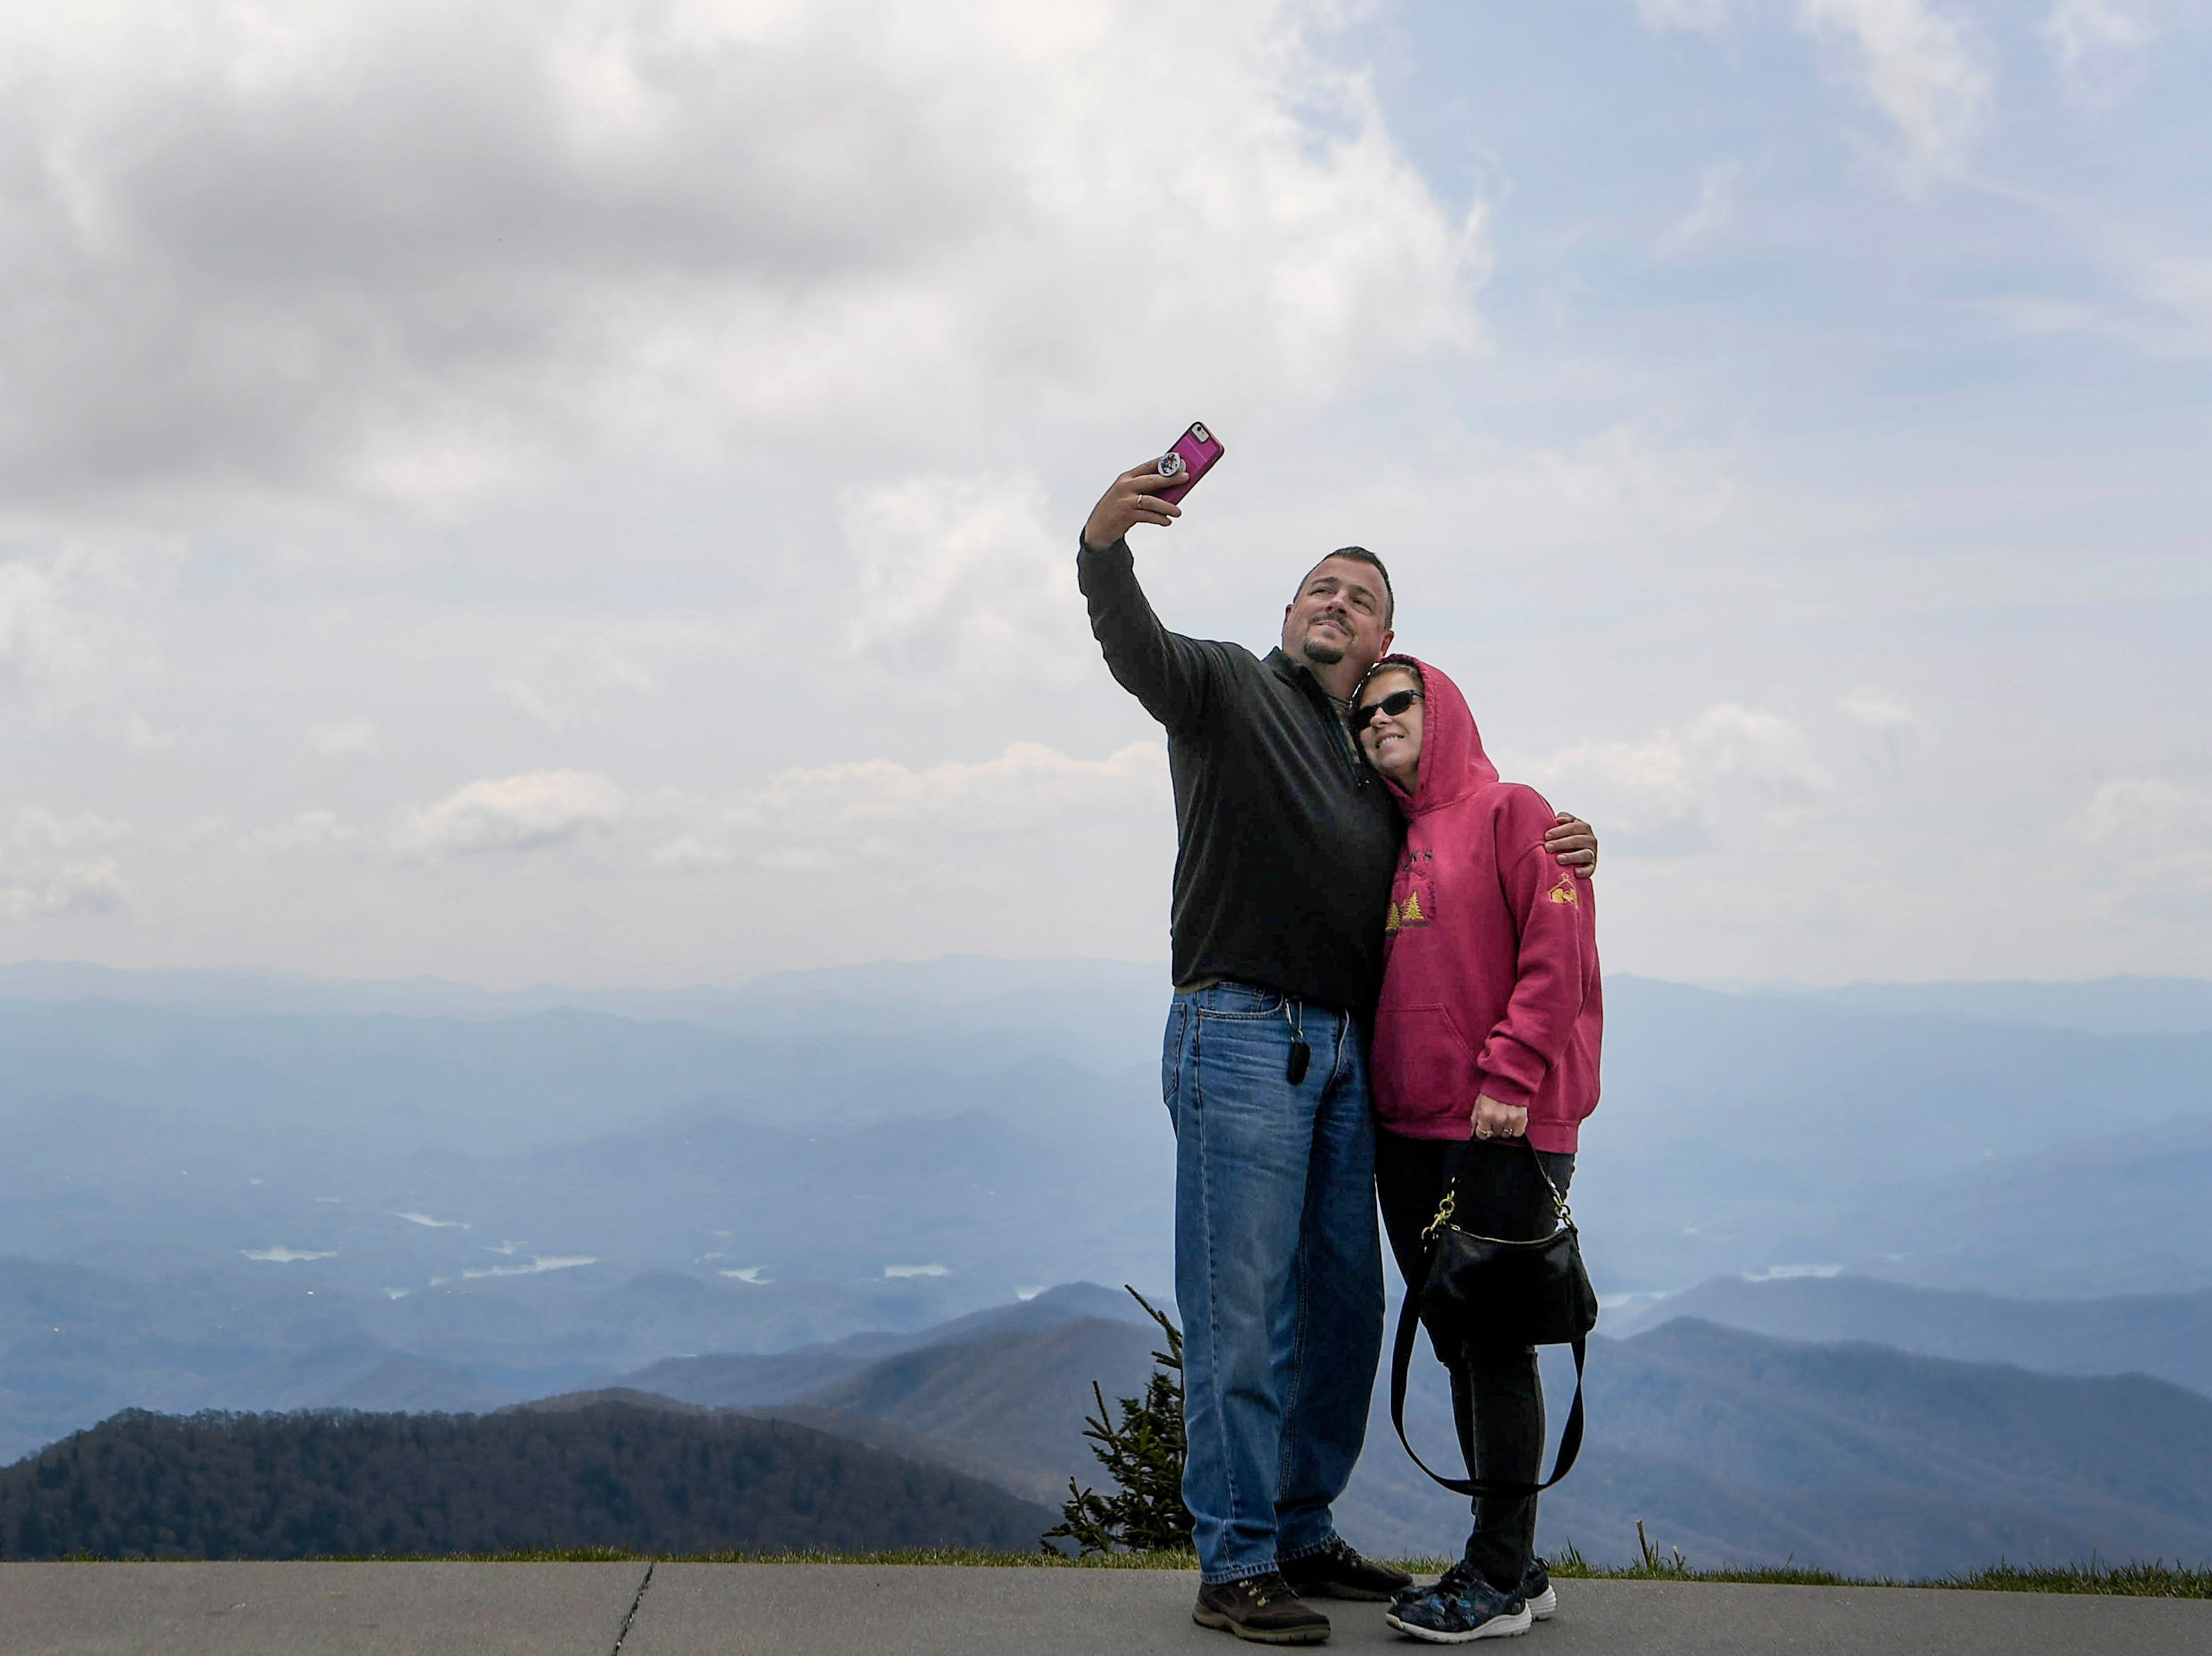 Ronnie and Tammy Cook, of Smyrna, Georgia, take a photo in the parking lot of Clingmans Dome in Great Smoky Mountain National Park April 10, 2019.